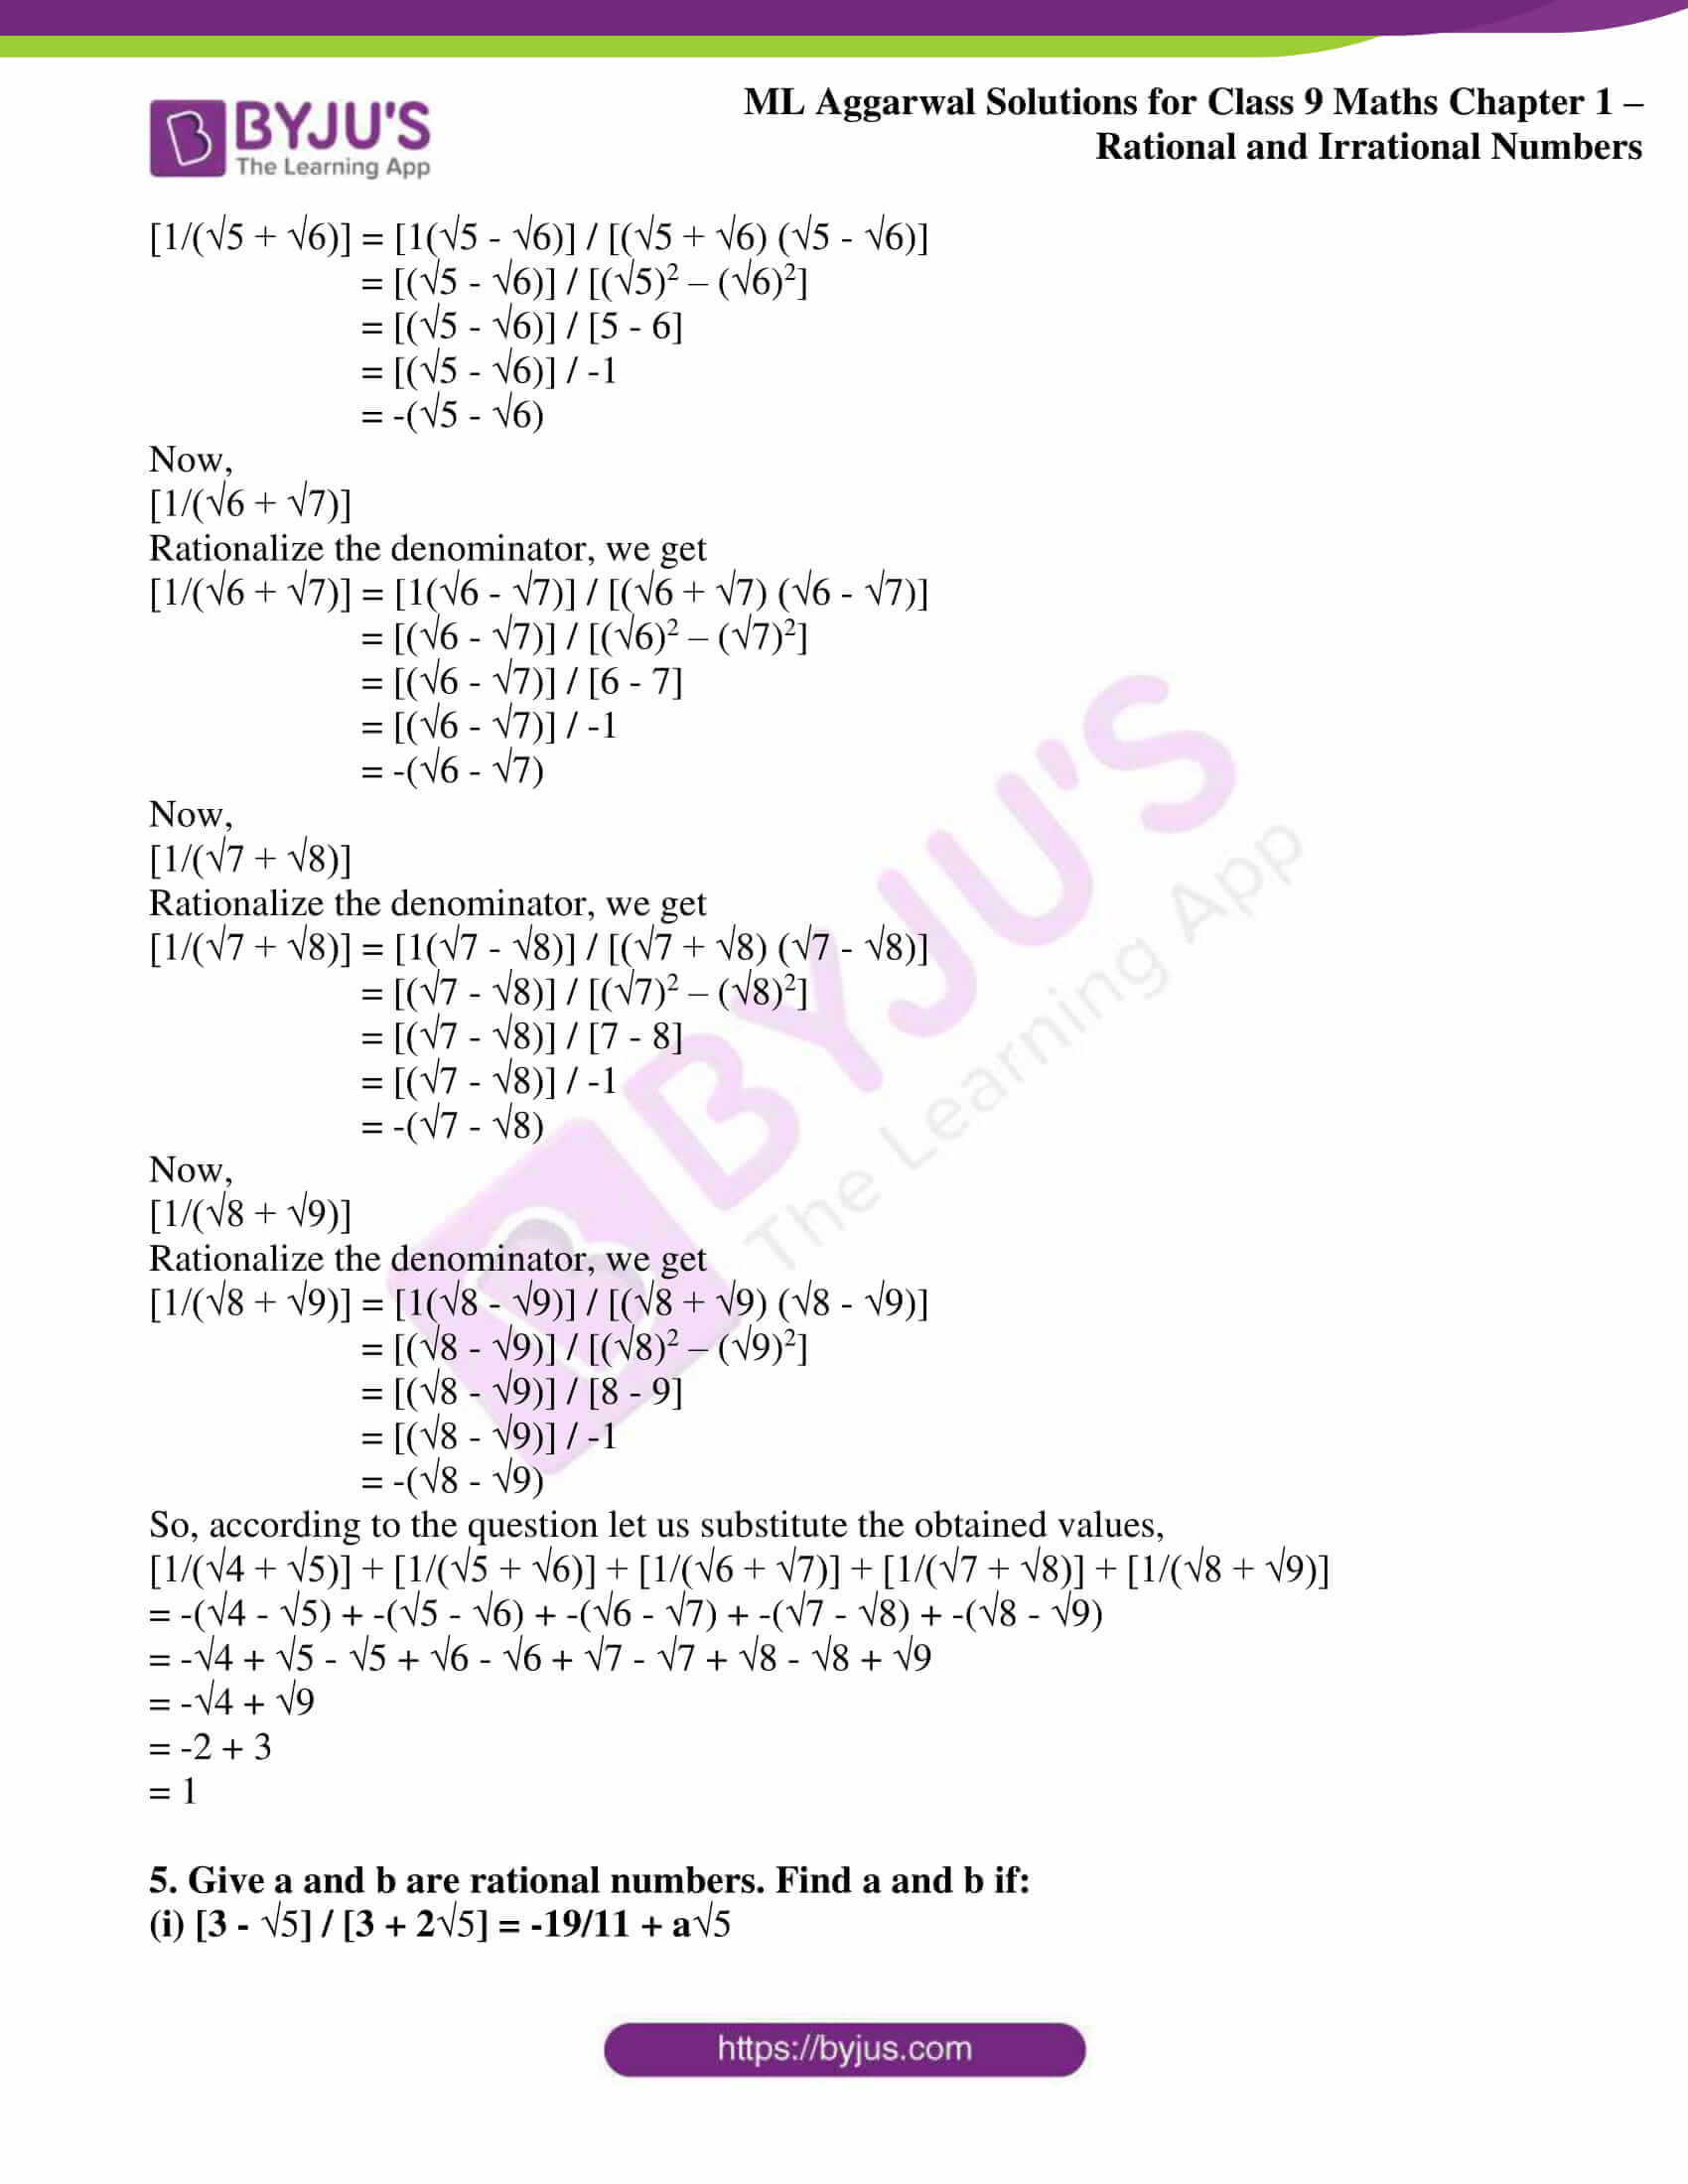 ml aggarwal solutions for class 9 maths chapter 1 53